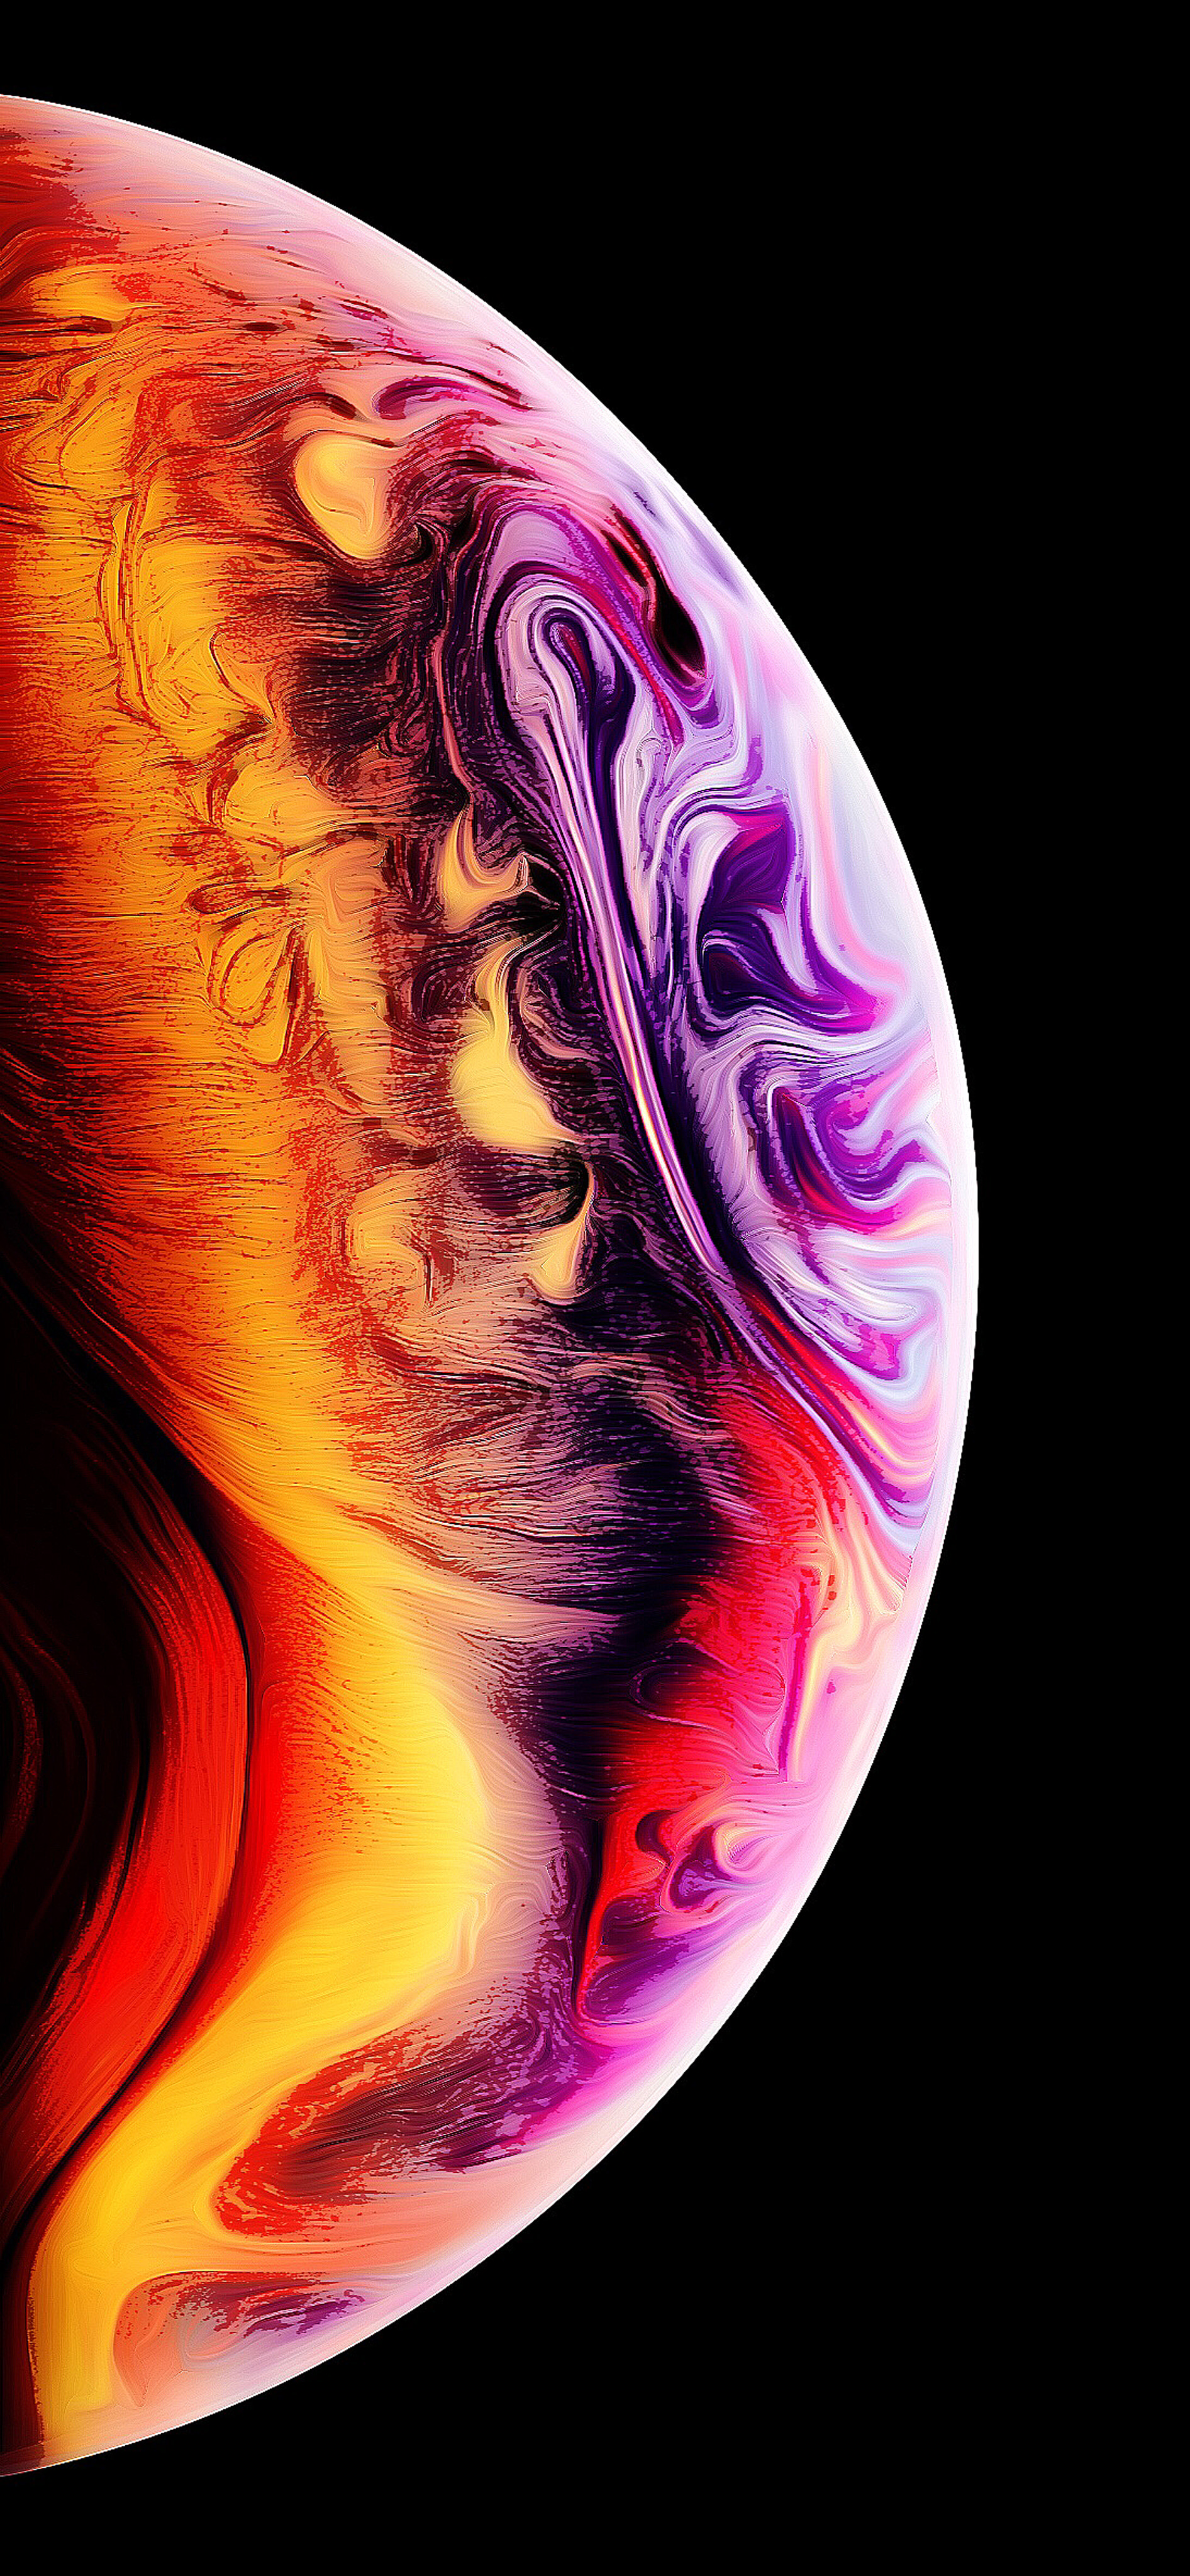 Download iPhone XS marketing wallpaper for any iPhone 1892x4096